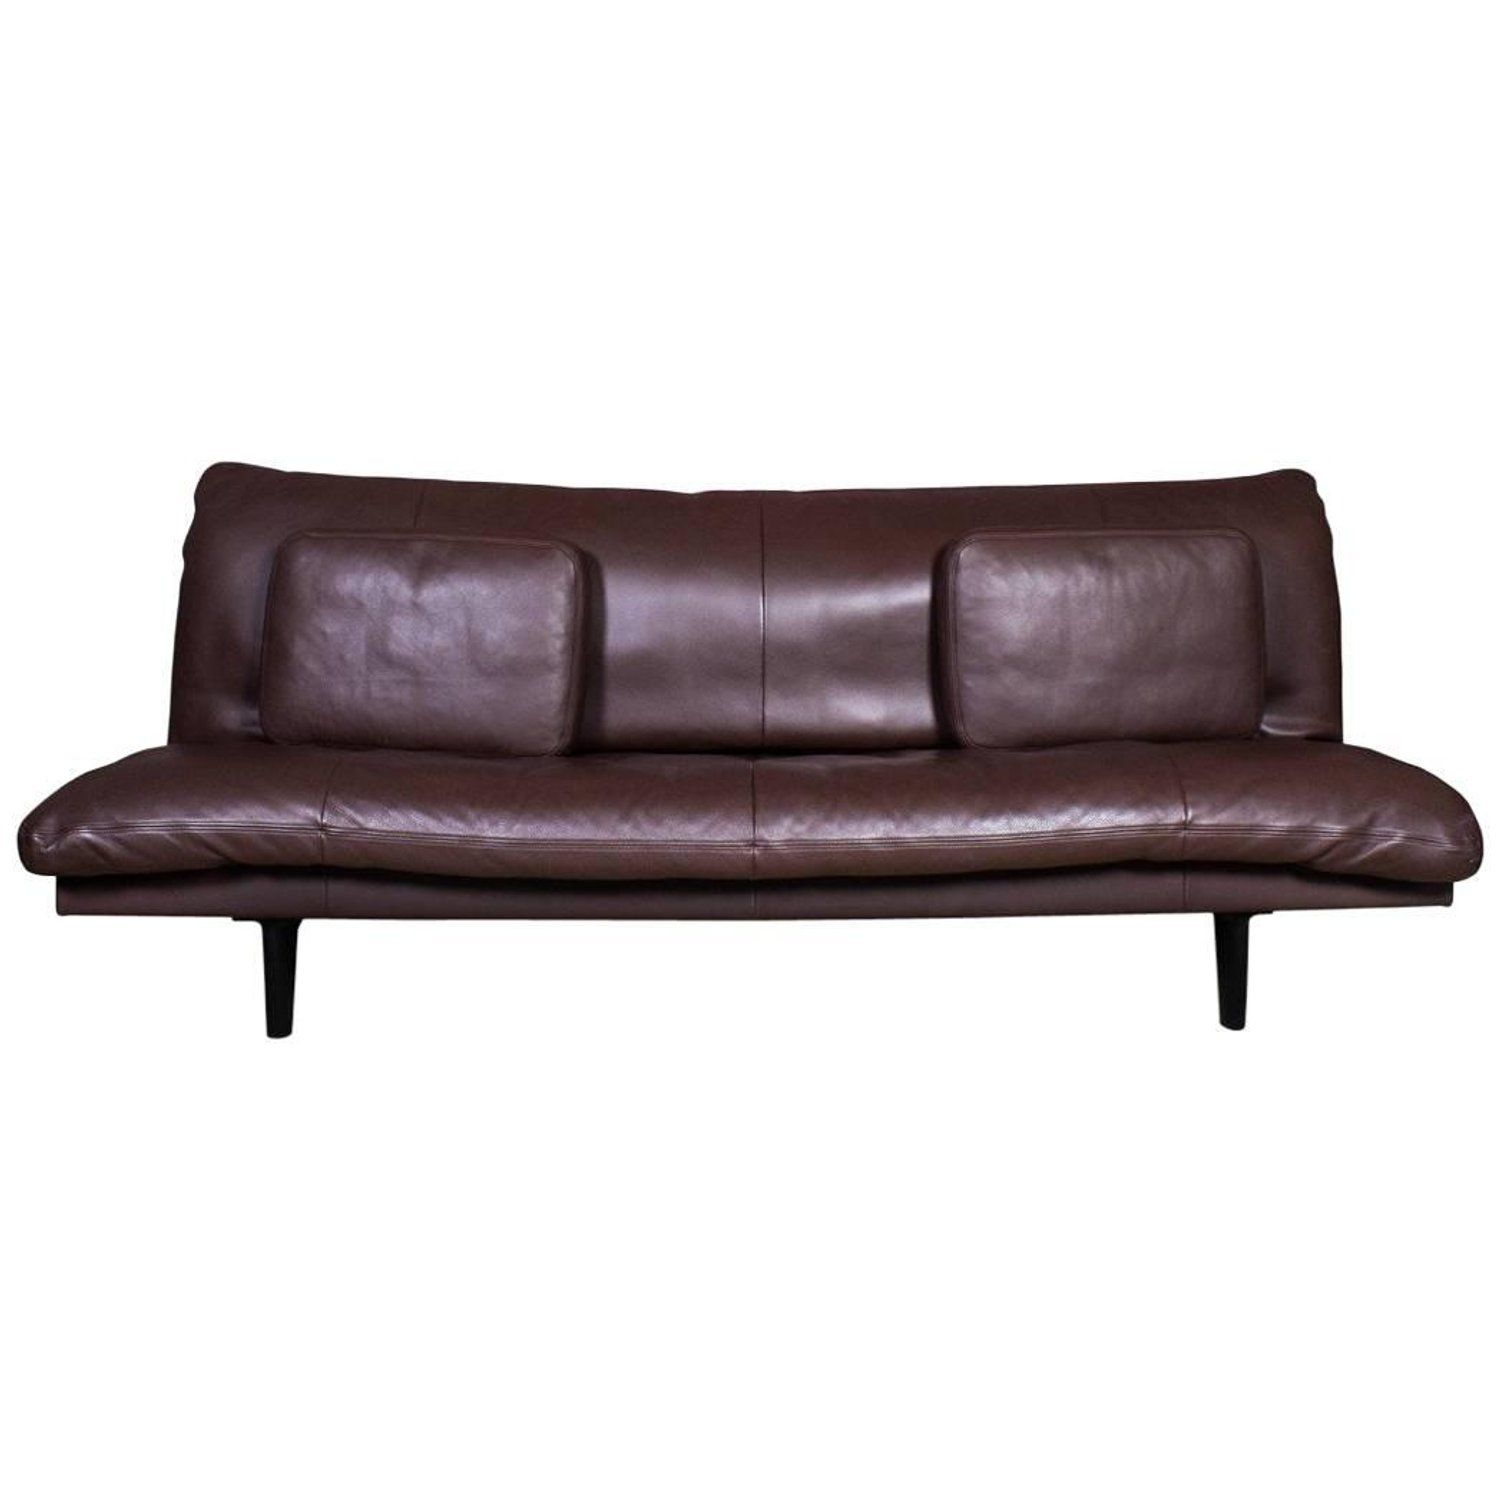 De Sede Sleeper Sofa Cheap Black Leather Corner Uk Chocolate Brown Or Daybed Model Ds 169